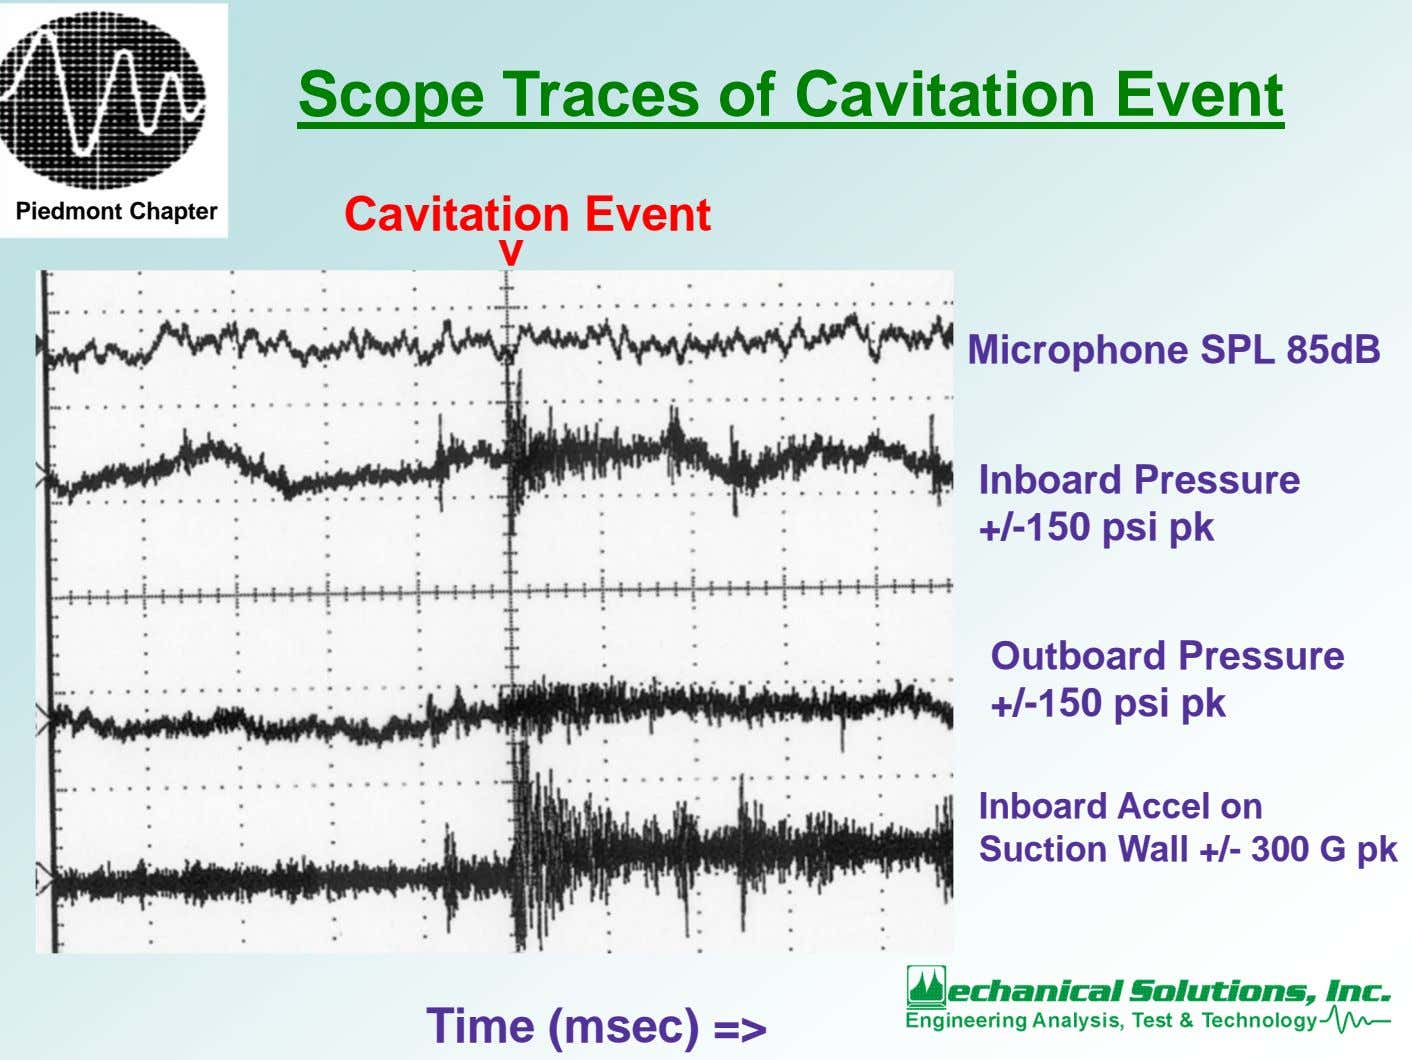 Scope Traces of Cavitation Event Piedmont Chapter Cavitation Event v Microphone SPL 85dB Inboard Pressure